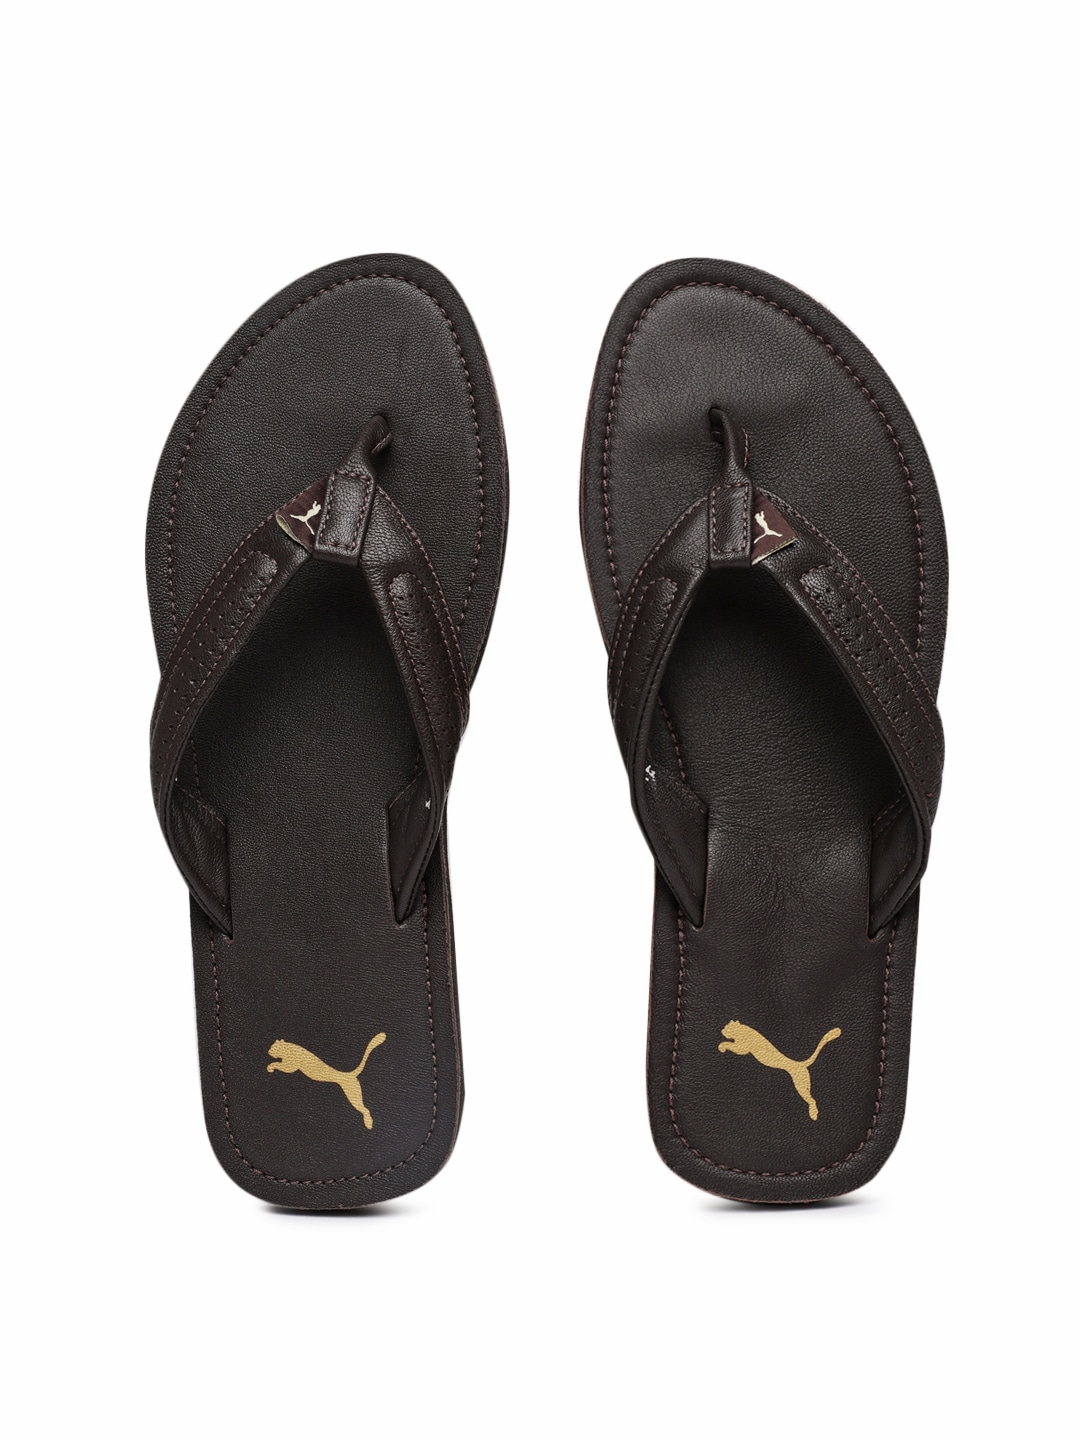 5e2bca140201 Buy Slippers   Flip Flops for Men Online in India